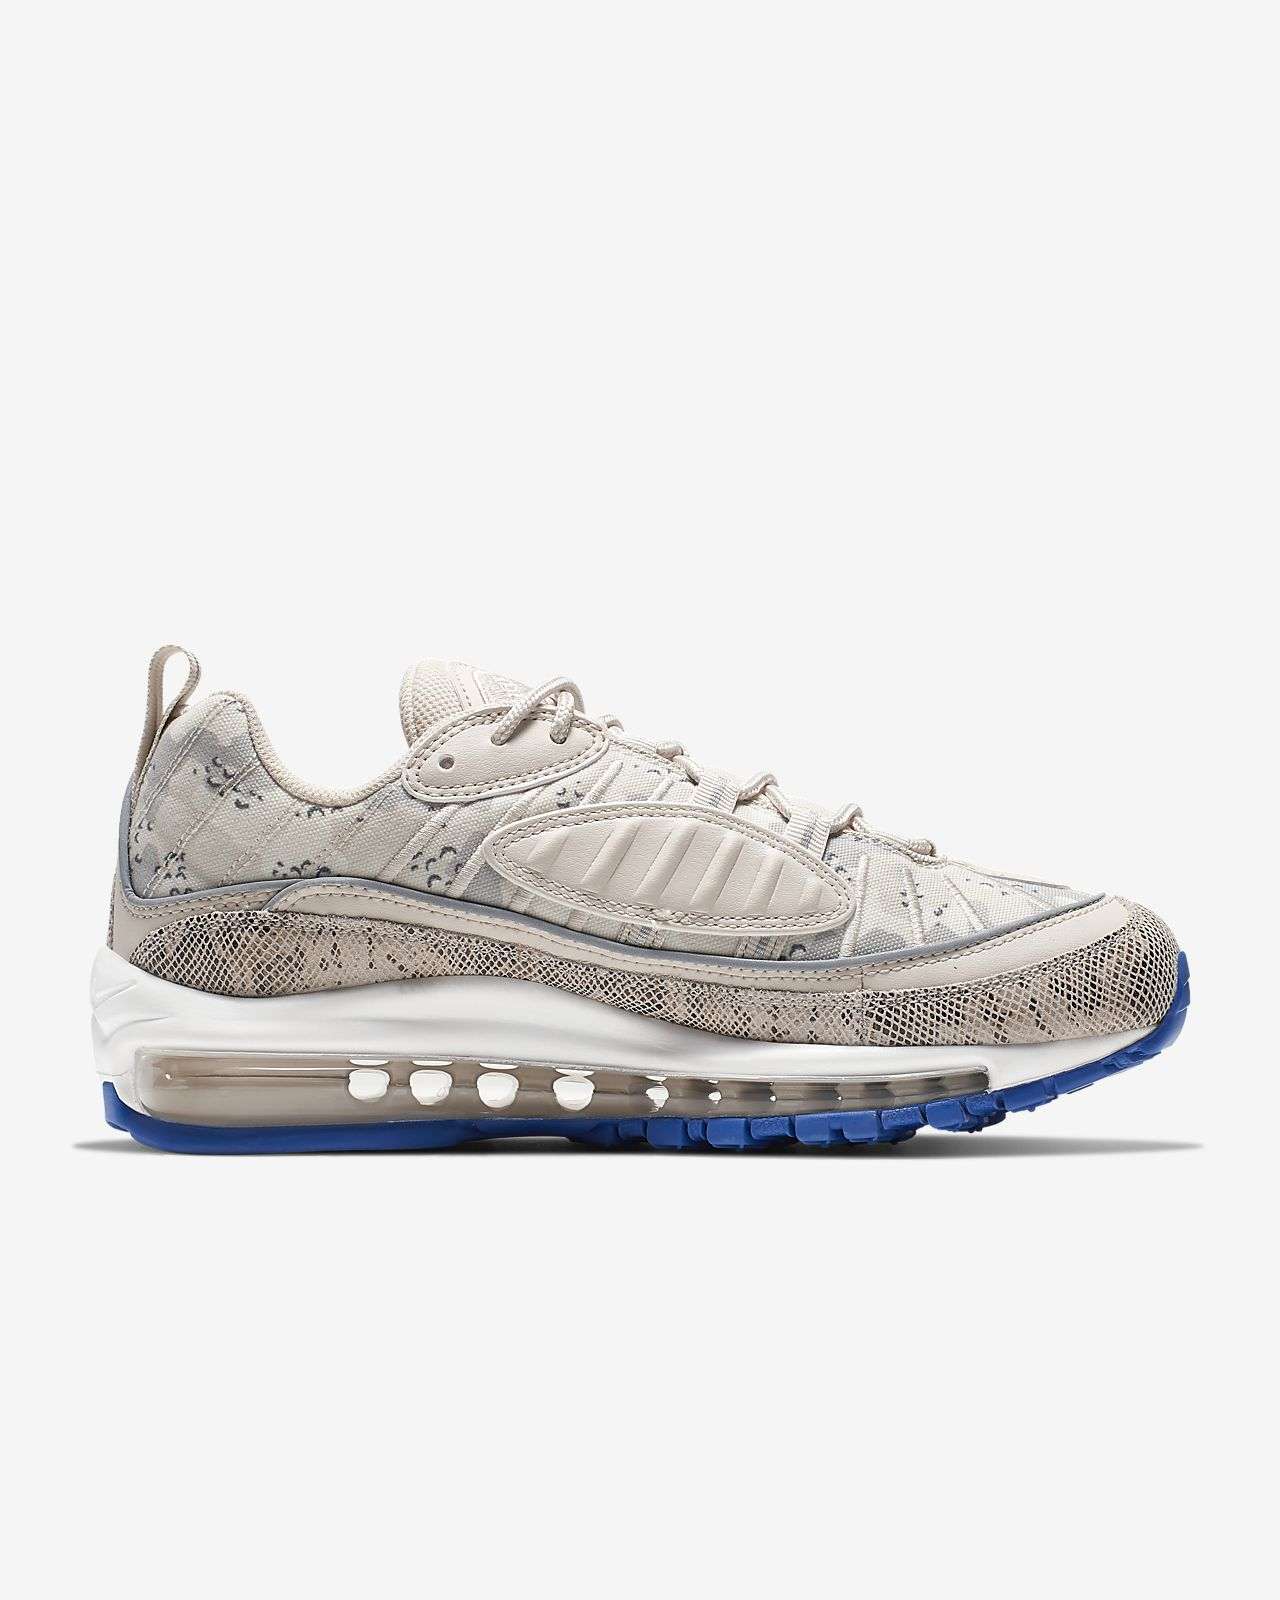 Nike Air Max 97 Premium Sports Shoes, नाइकी एयर